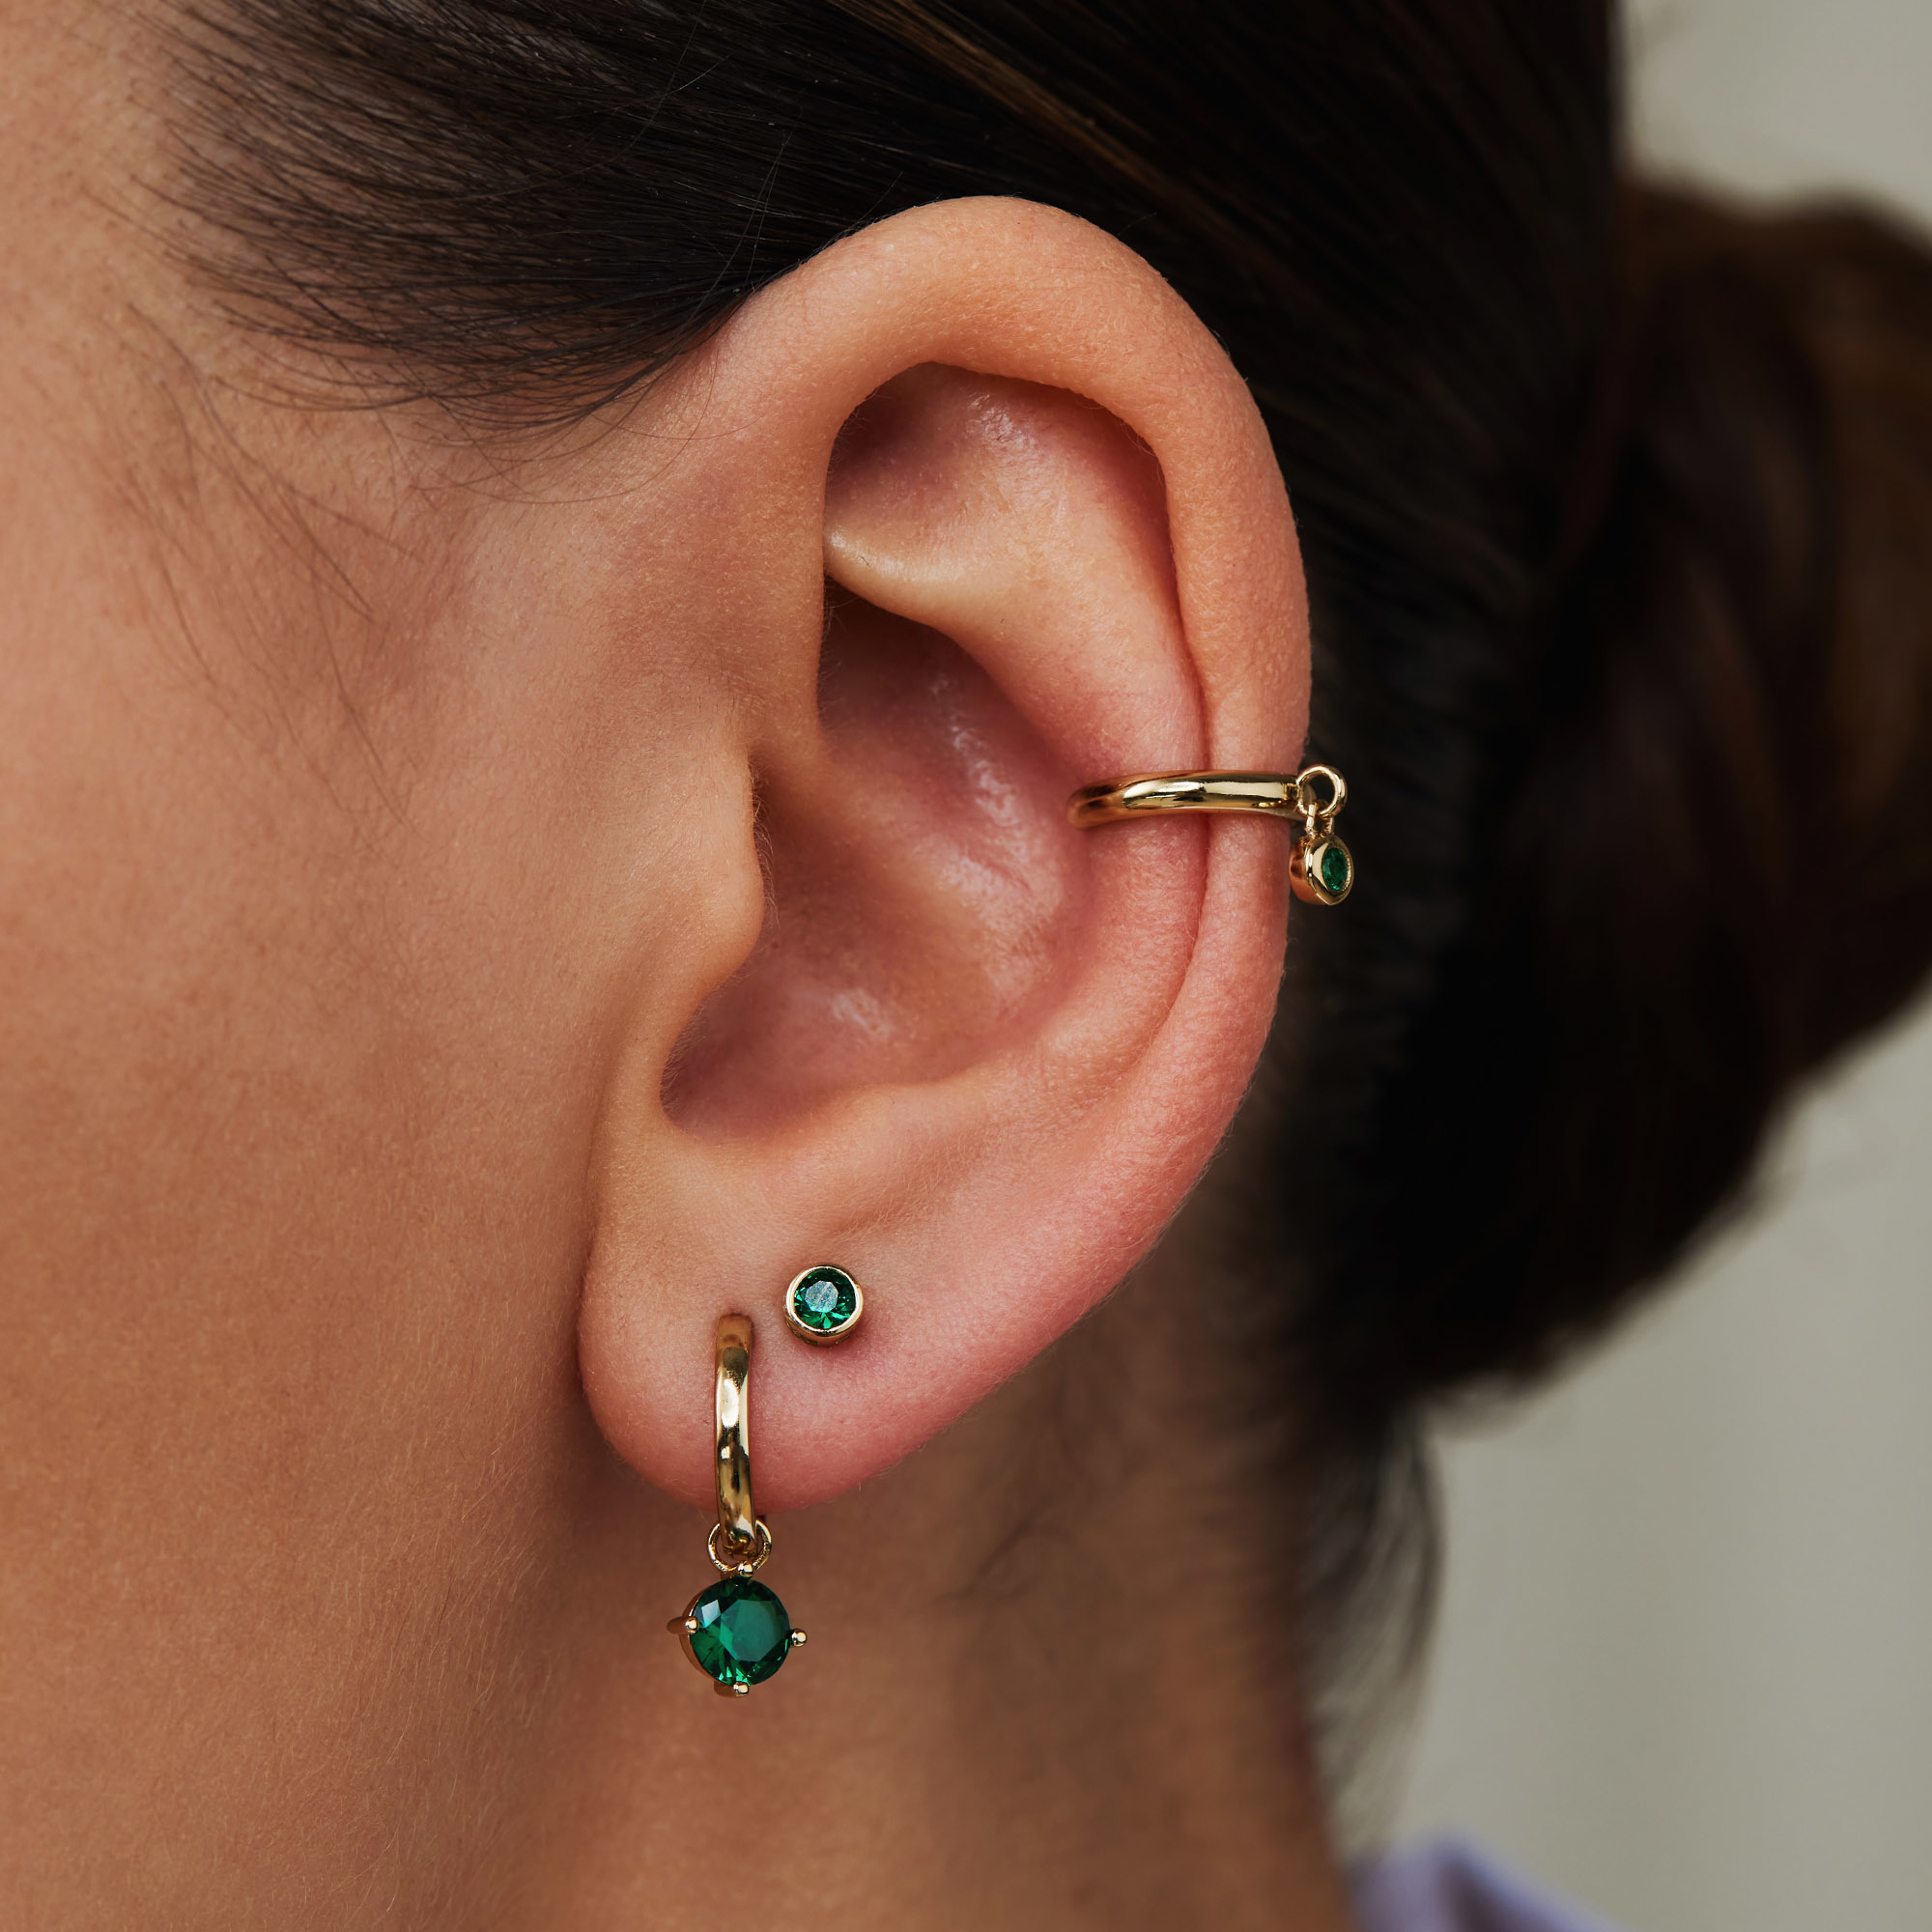 Violet Hamden Venus 925 sterling silver gold colored ear cuff with birthstone